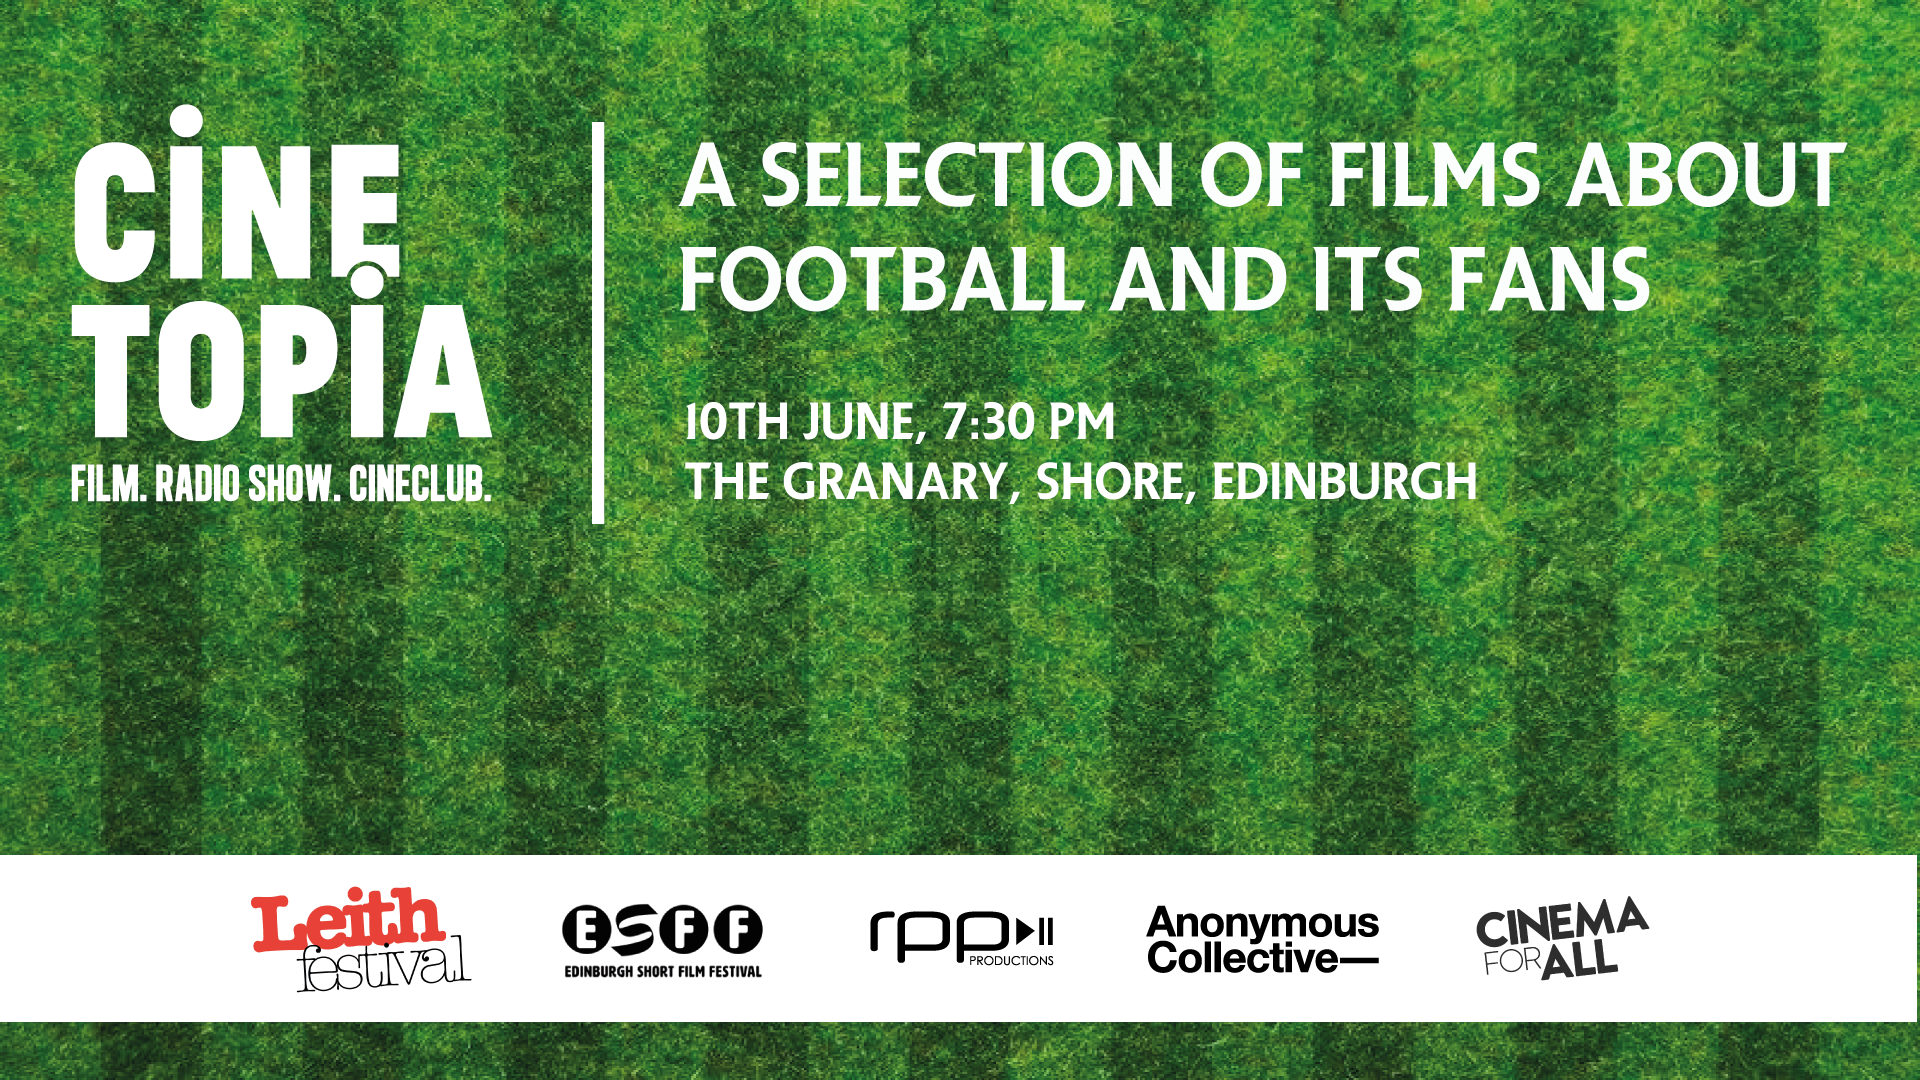 CINETOPIA & EDINBURGH SHORT FILM FESTIVAL EVENT